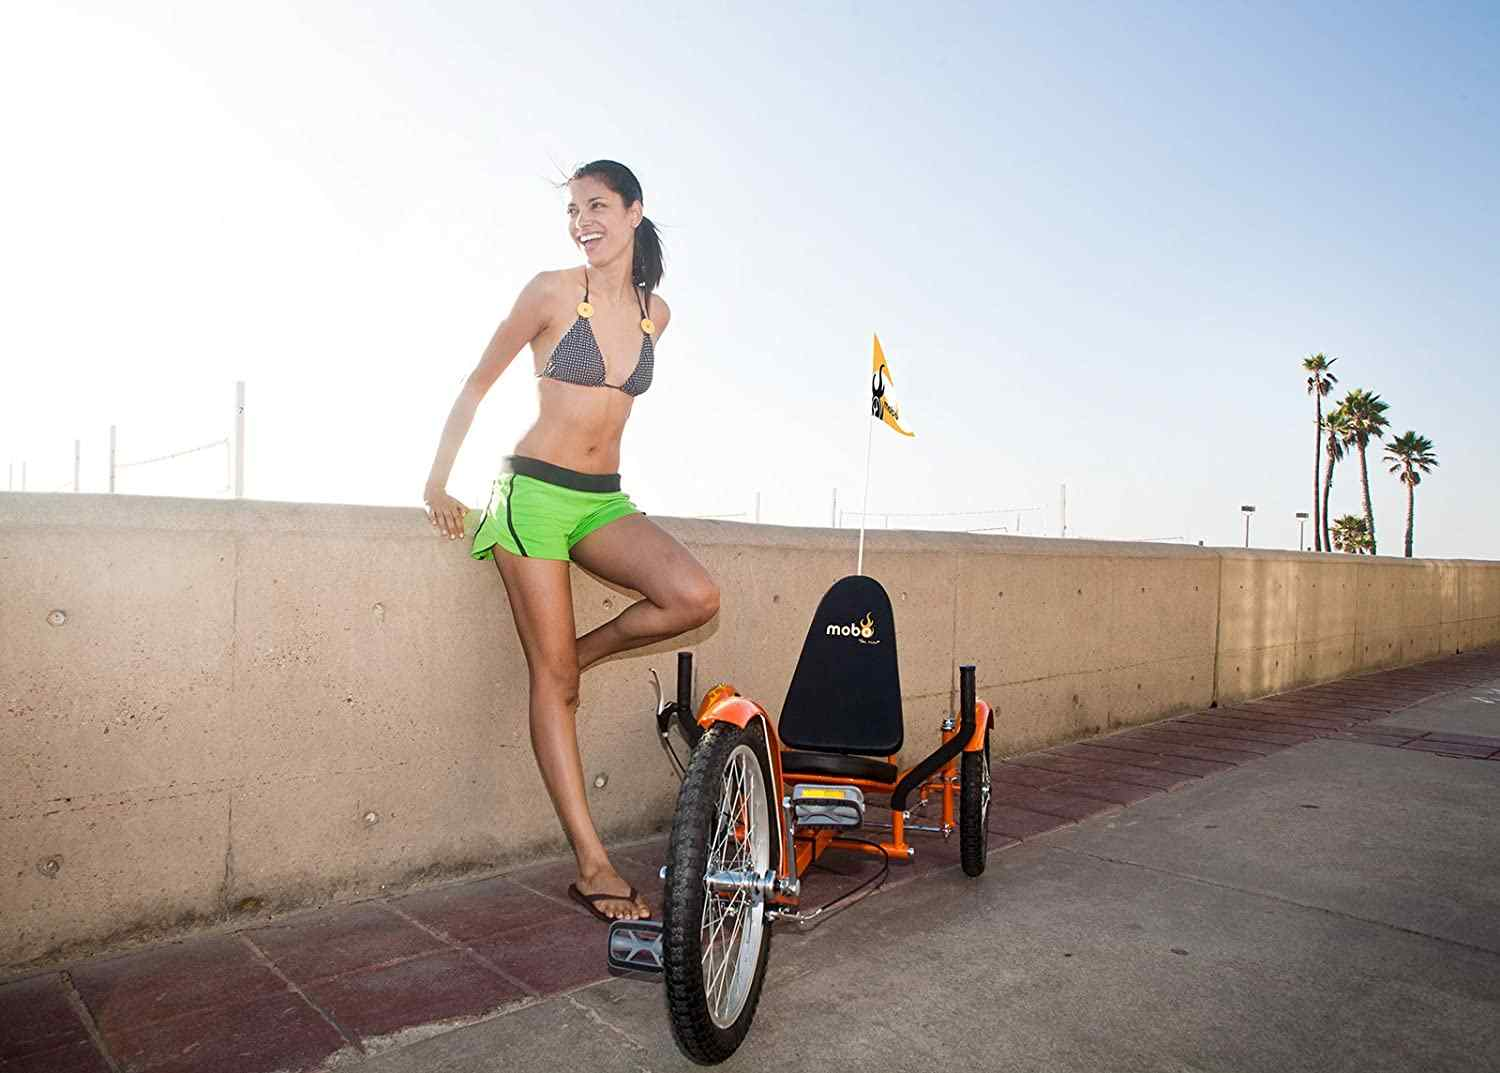 Mobo Triton Pro Adult Tricycle for Men & Women